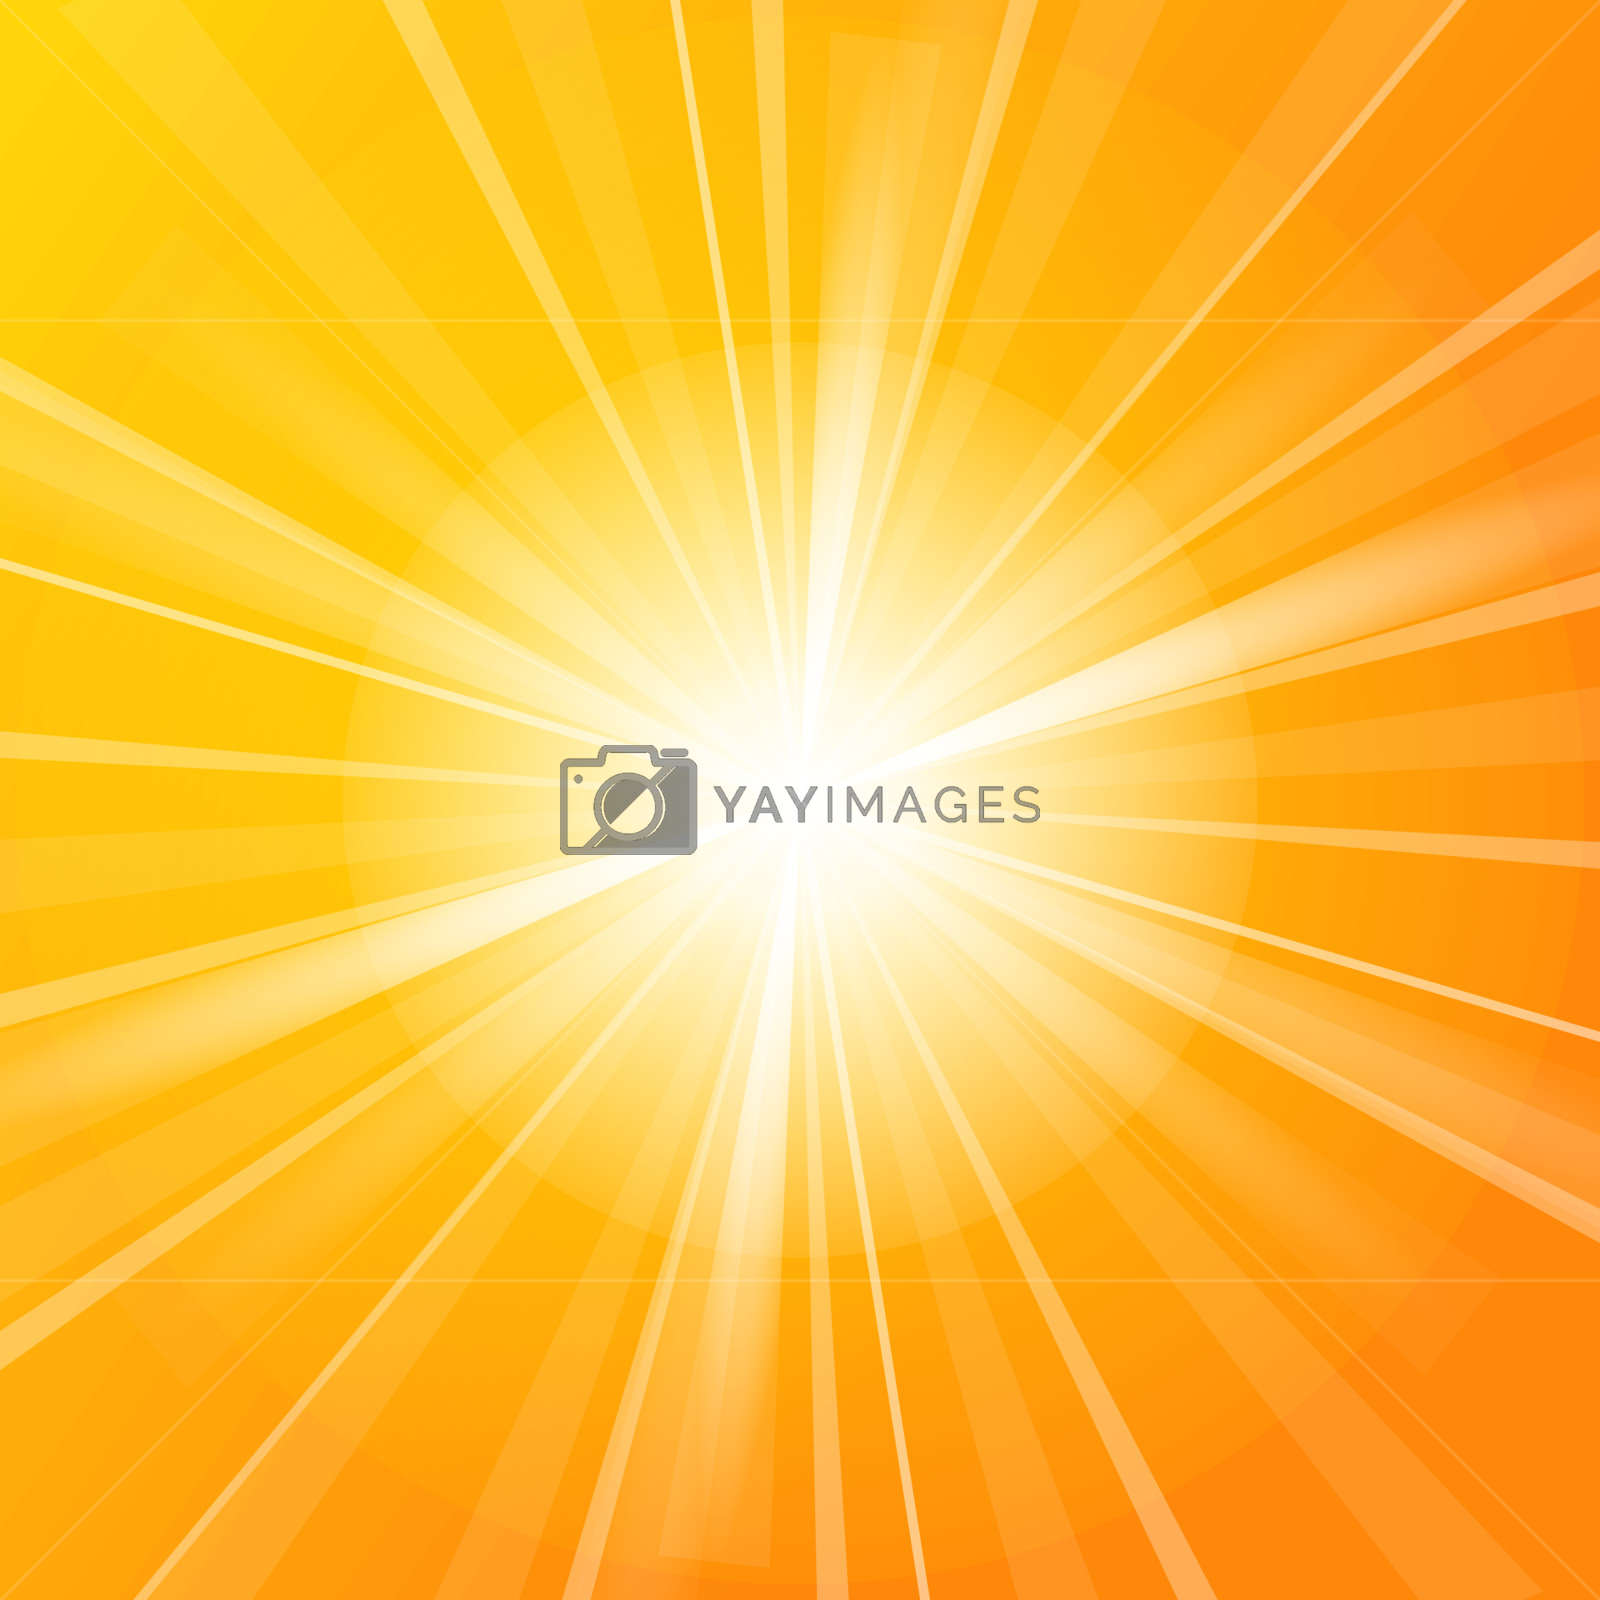 png transparent stock Background stock image yayimages. Vector sunshine